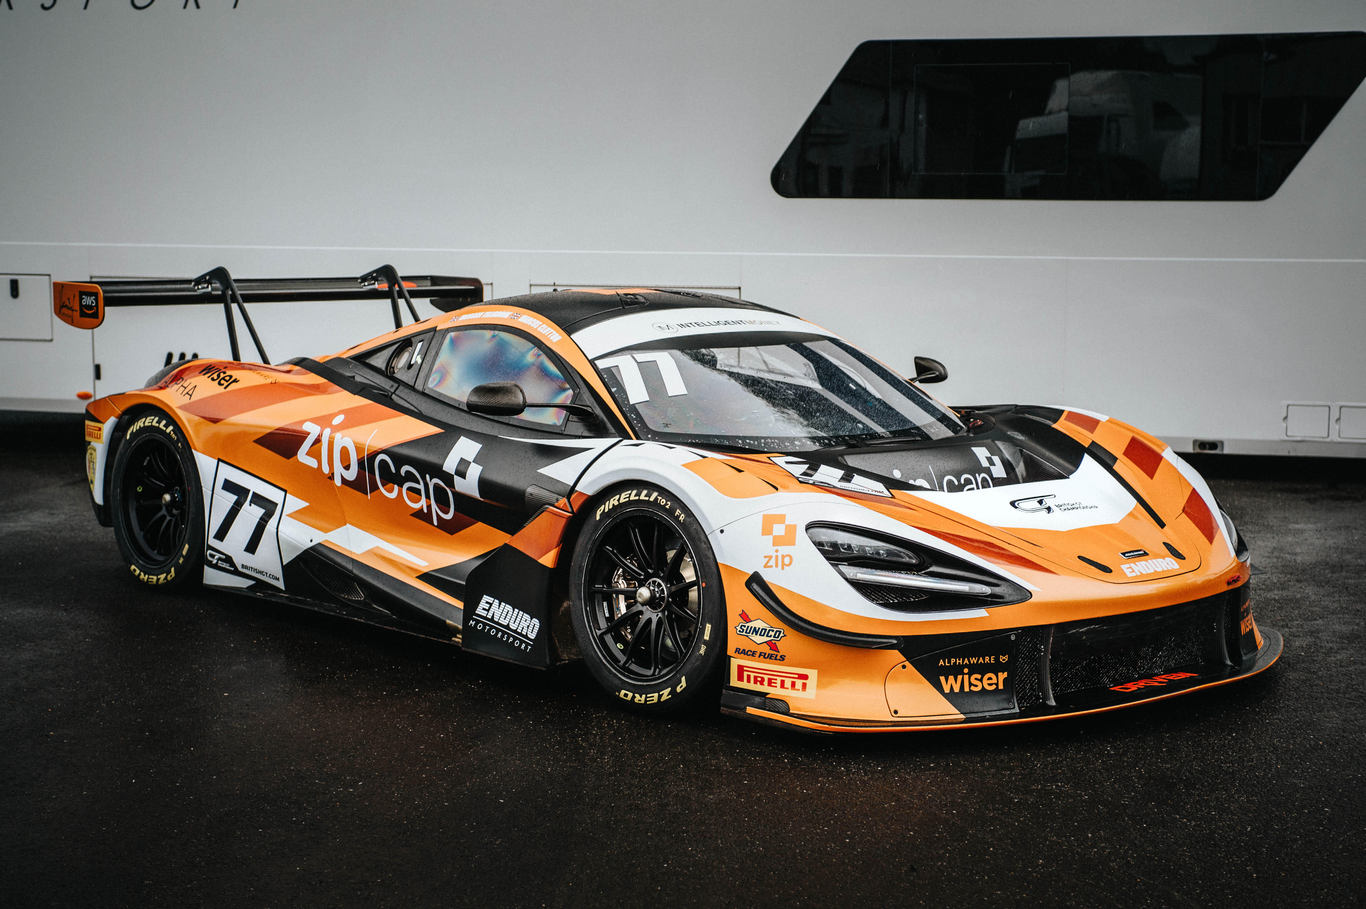 British GT debut for Enduro Motorsport with Tillbrook and Clutton